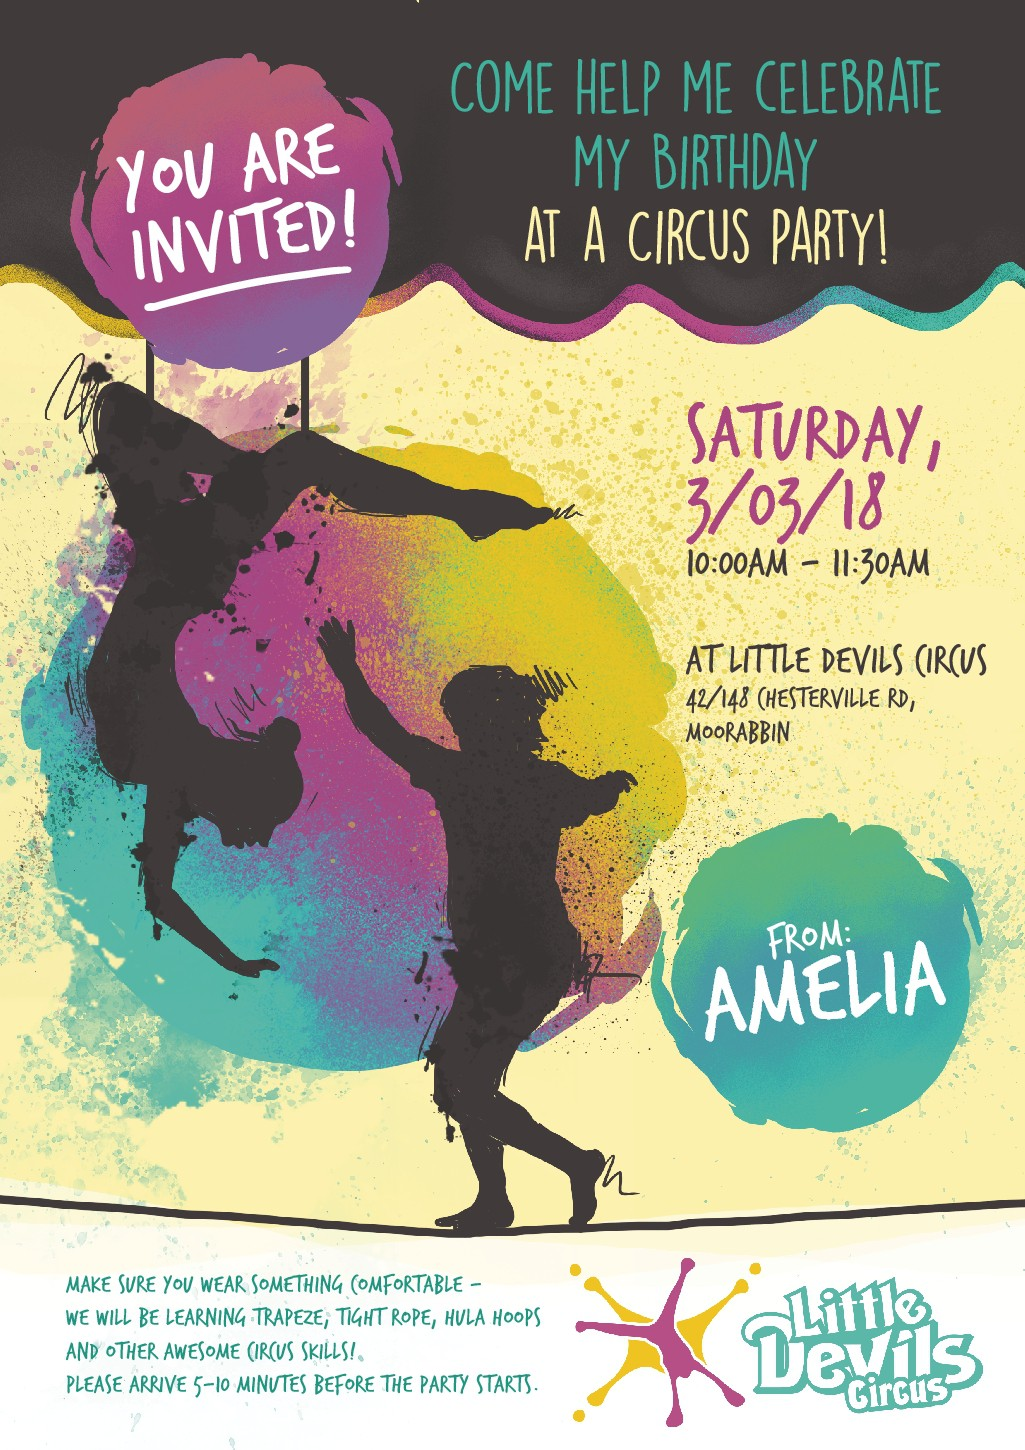 Design an awesome party invitation for a circus company!